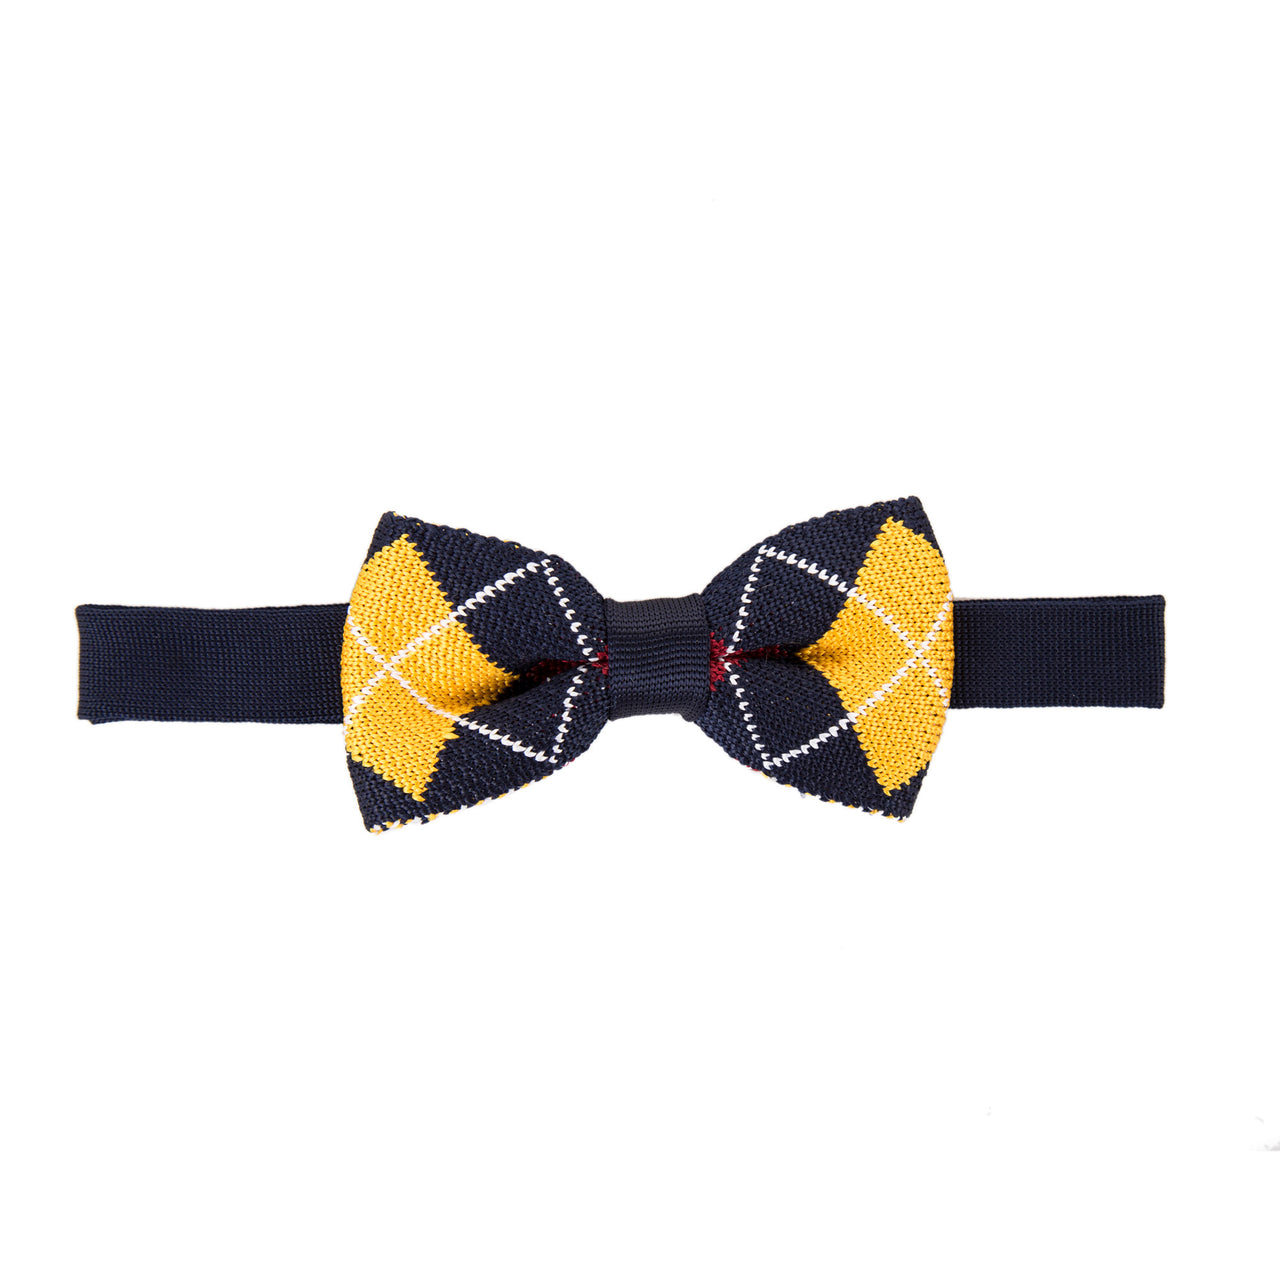 Pre-tied Knitted Bow Tie - Navy/Yellow Argyll